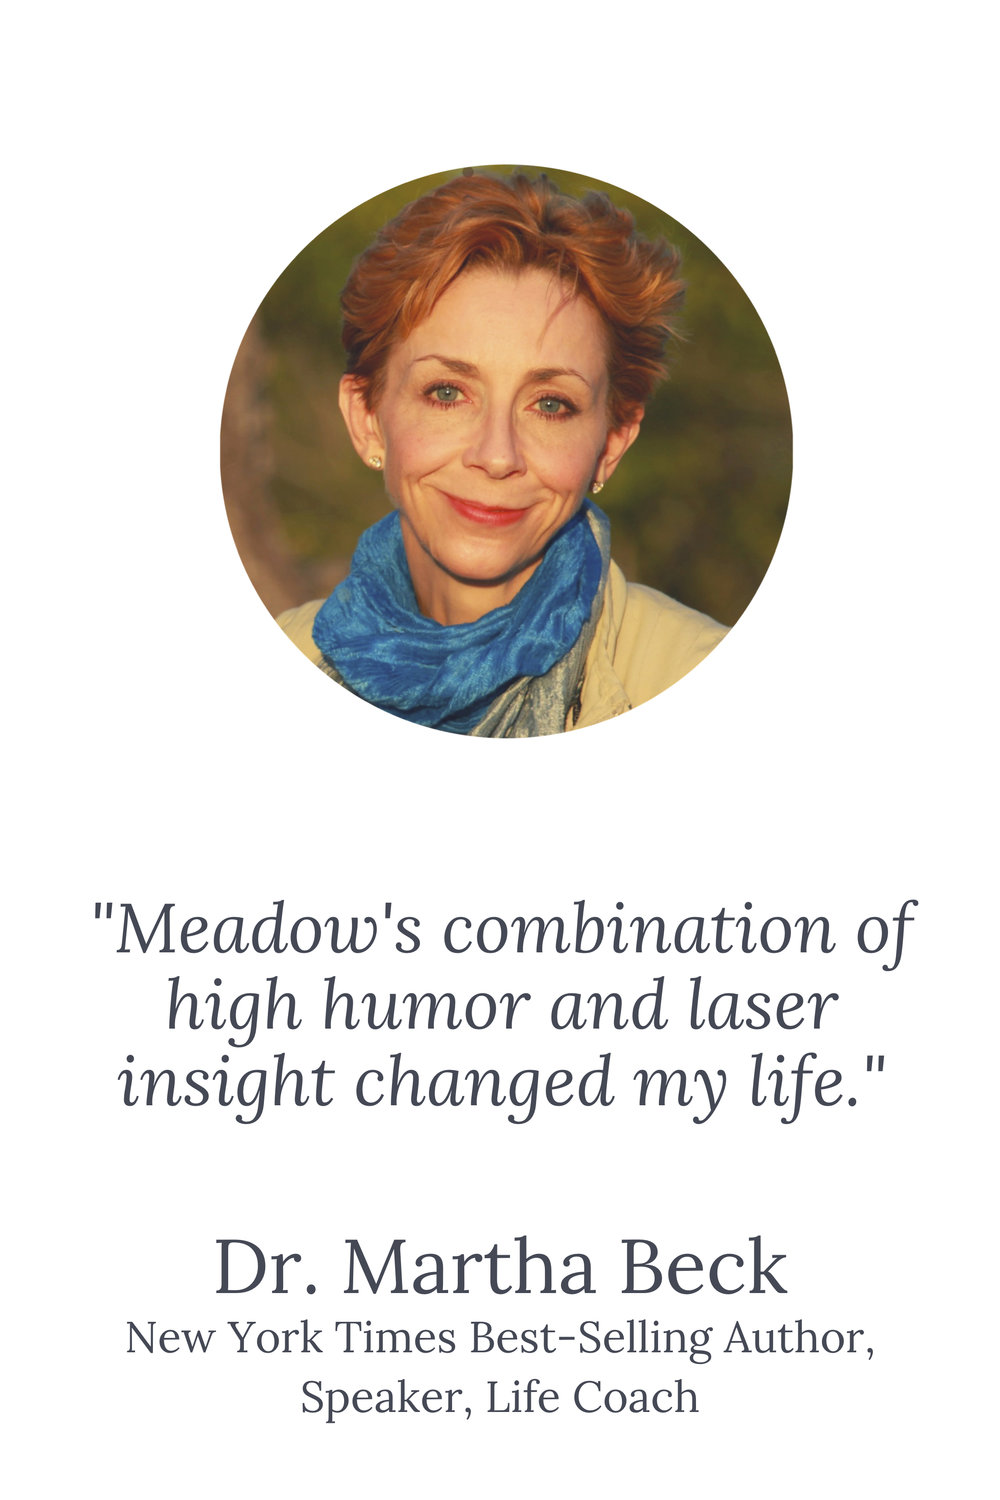 _Meadow's combination of high humor and laser insight changed my life._ Dr. Martha Beck New York Times Best-Selling Author, Speaker, Life Coach (2).jpg